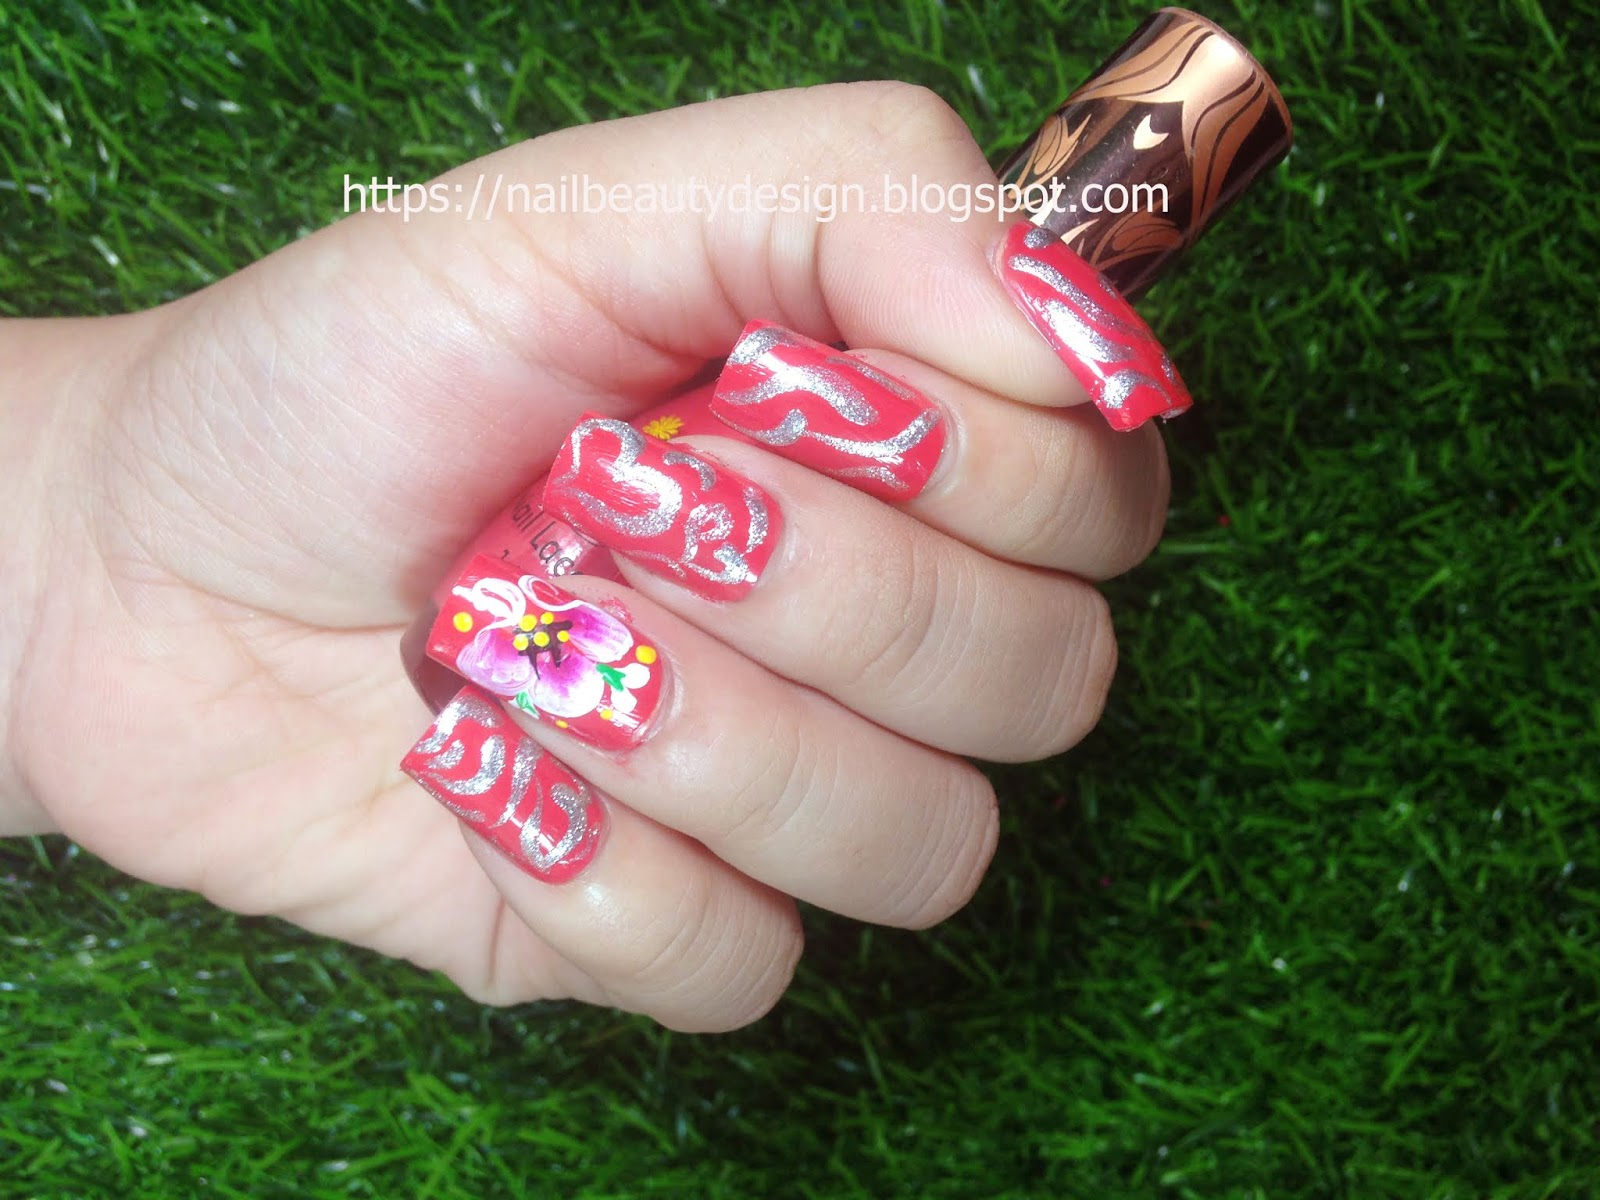 Simple Beautiful Nails Art Designs You Can Try At Home 10 Nail